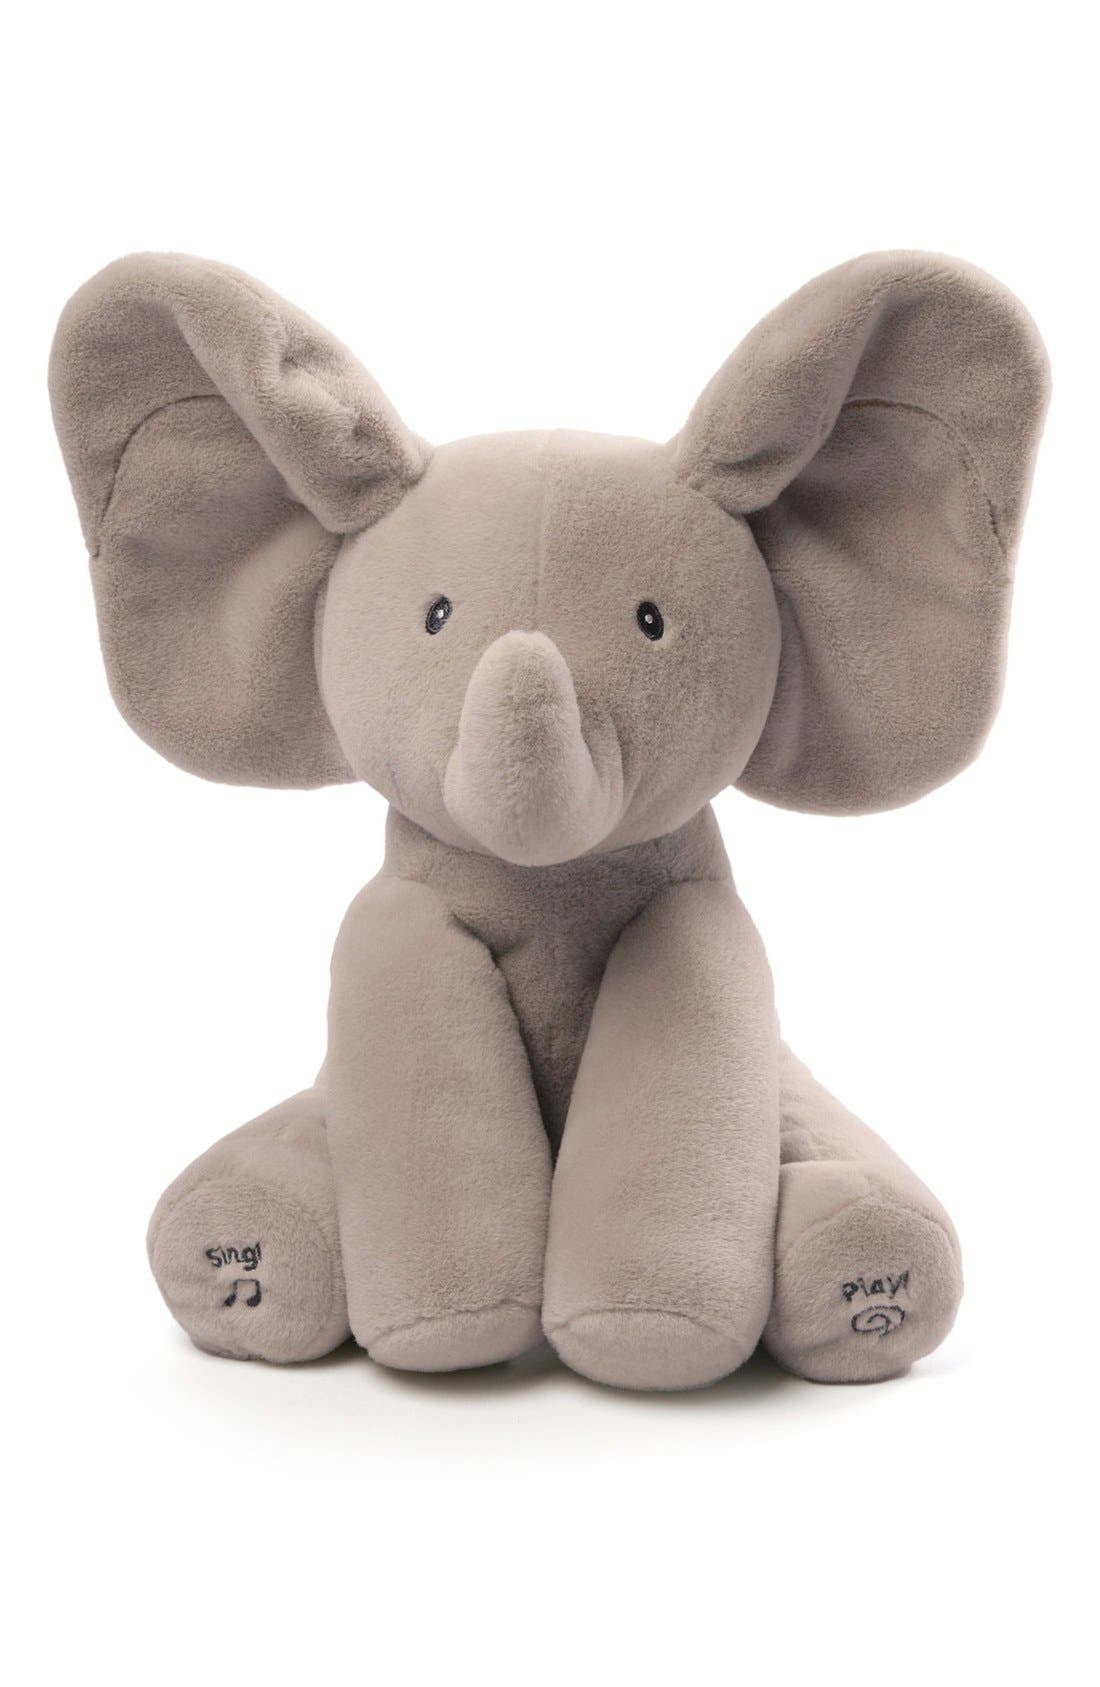 GUND Baby Gund 'Flappy The Elephant' Musical Elephant, Main, color, GREY